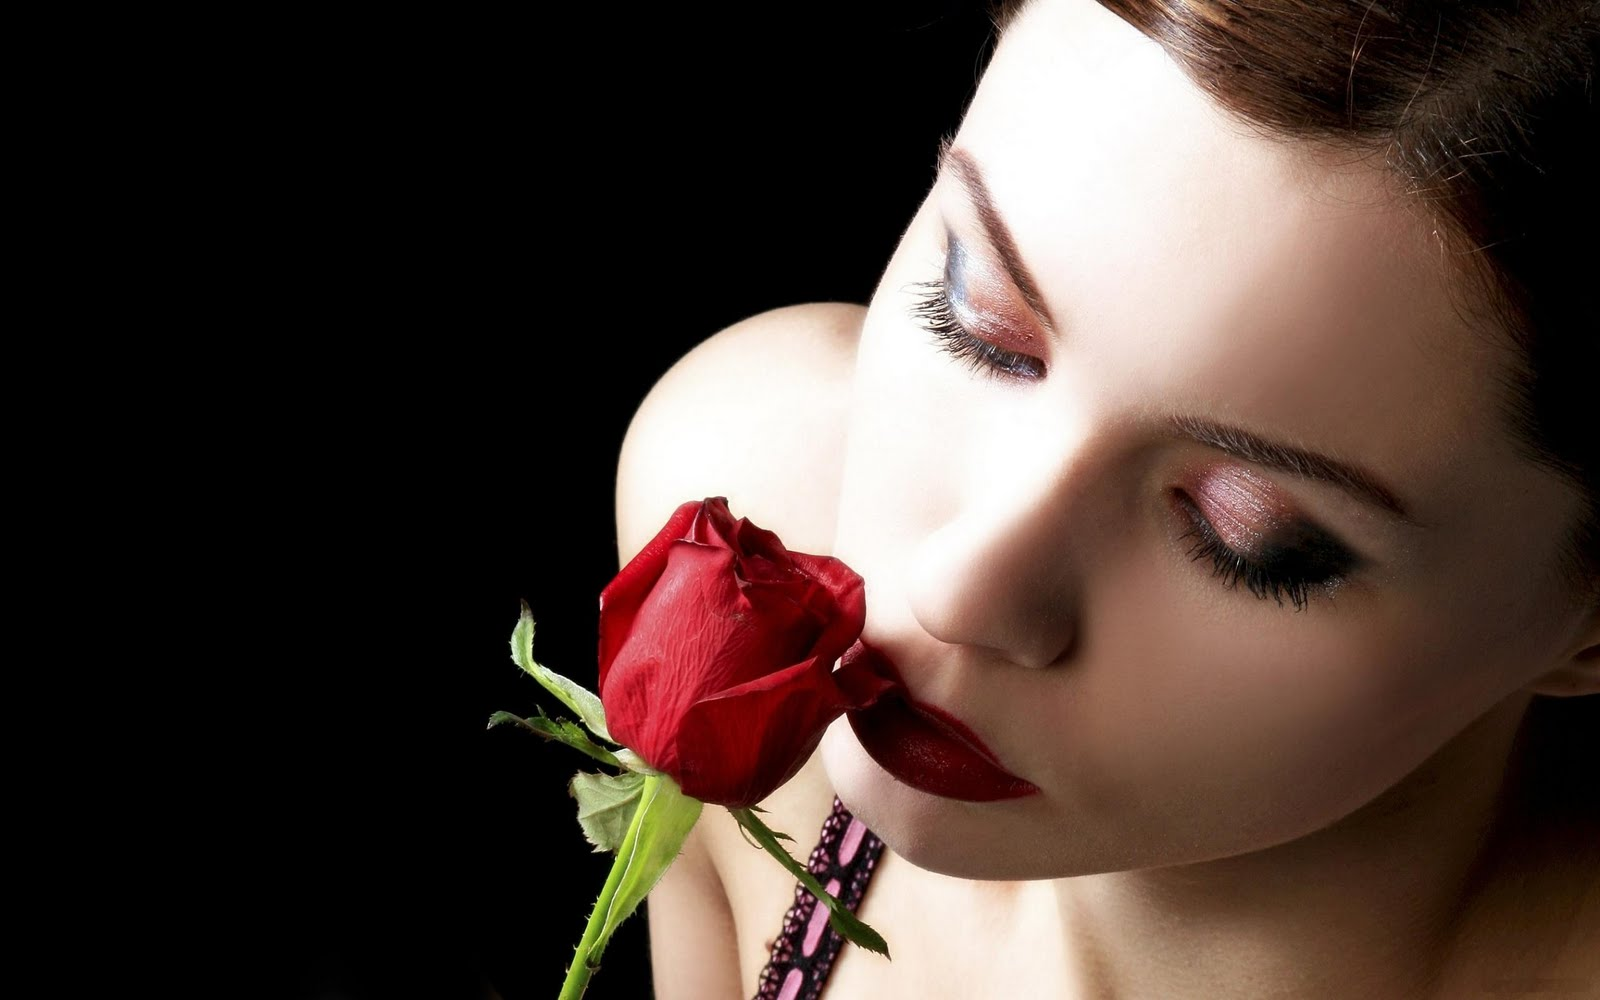 Romantic Love Girl Wallpaper : Beautiful Girl Red Lips And Rose Romantic HD Love Wallpaper Love Wallpapers Romantic ...